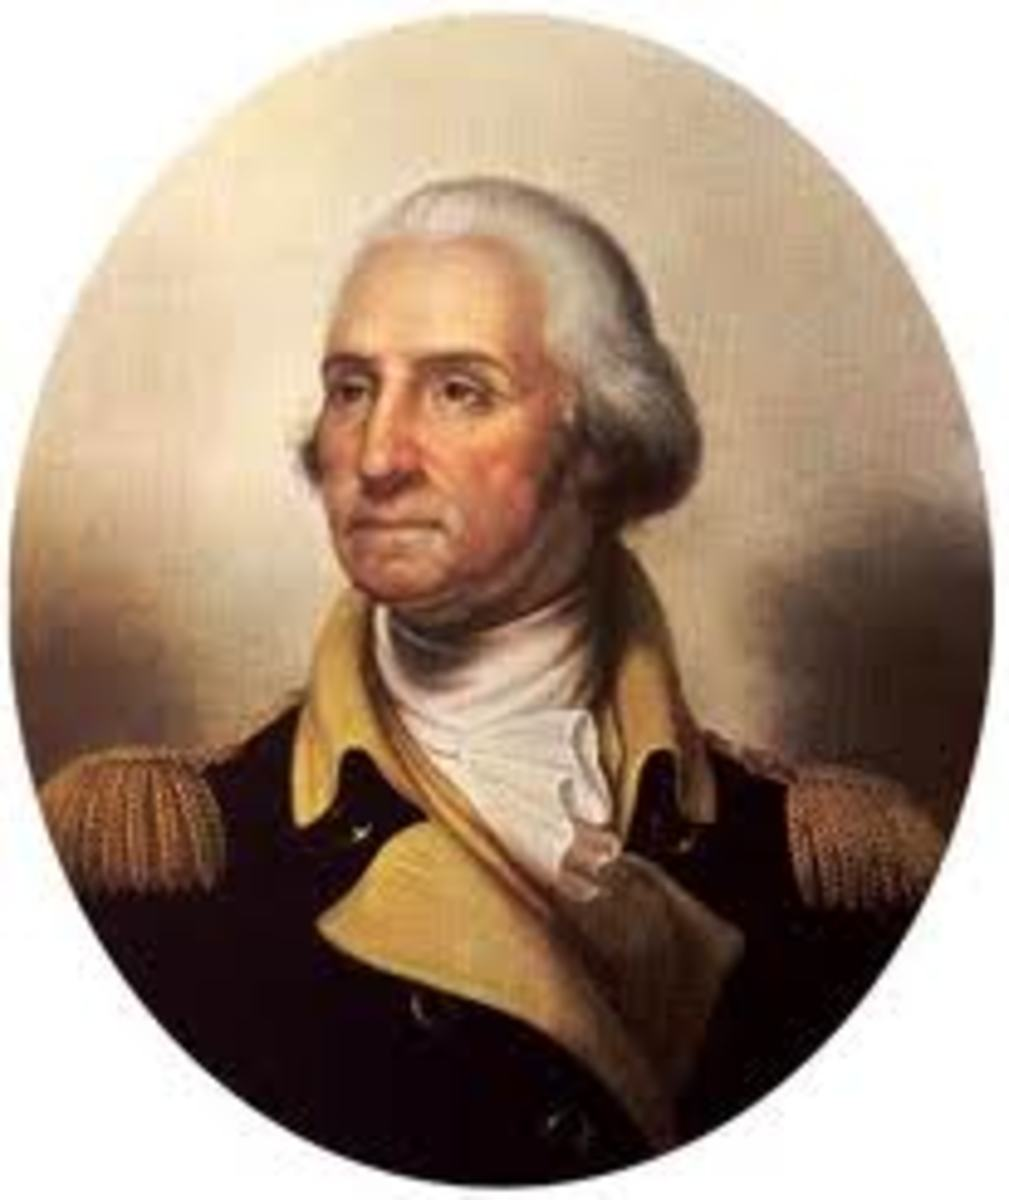 Pres. George Washington